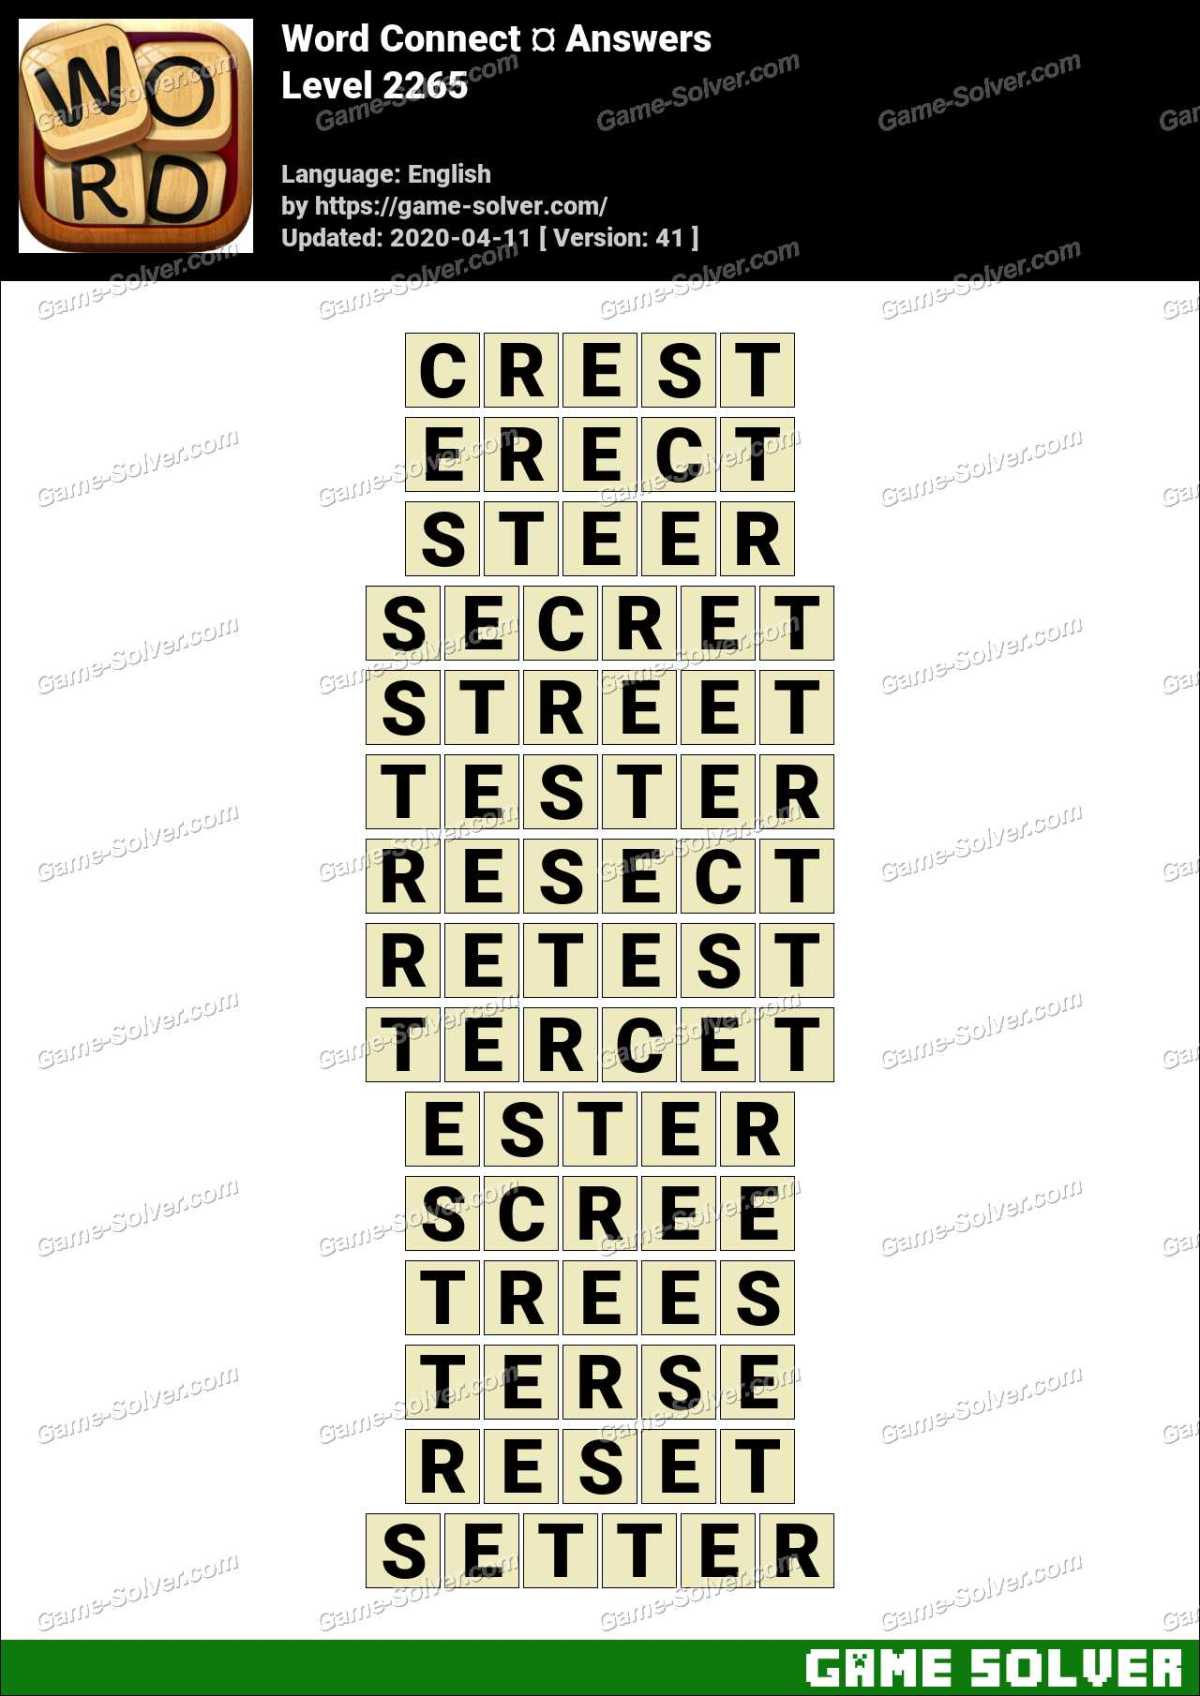 Word Connect Level 2265 Answers